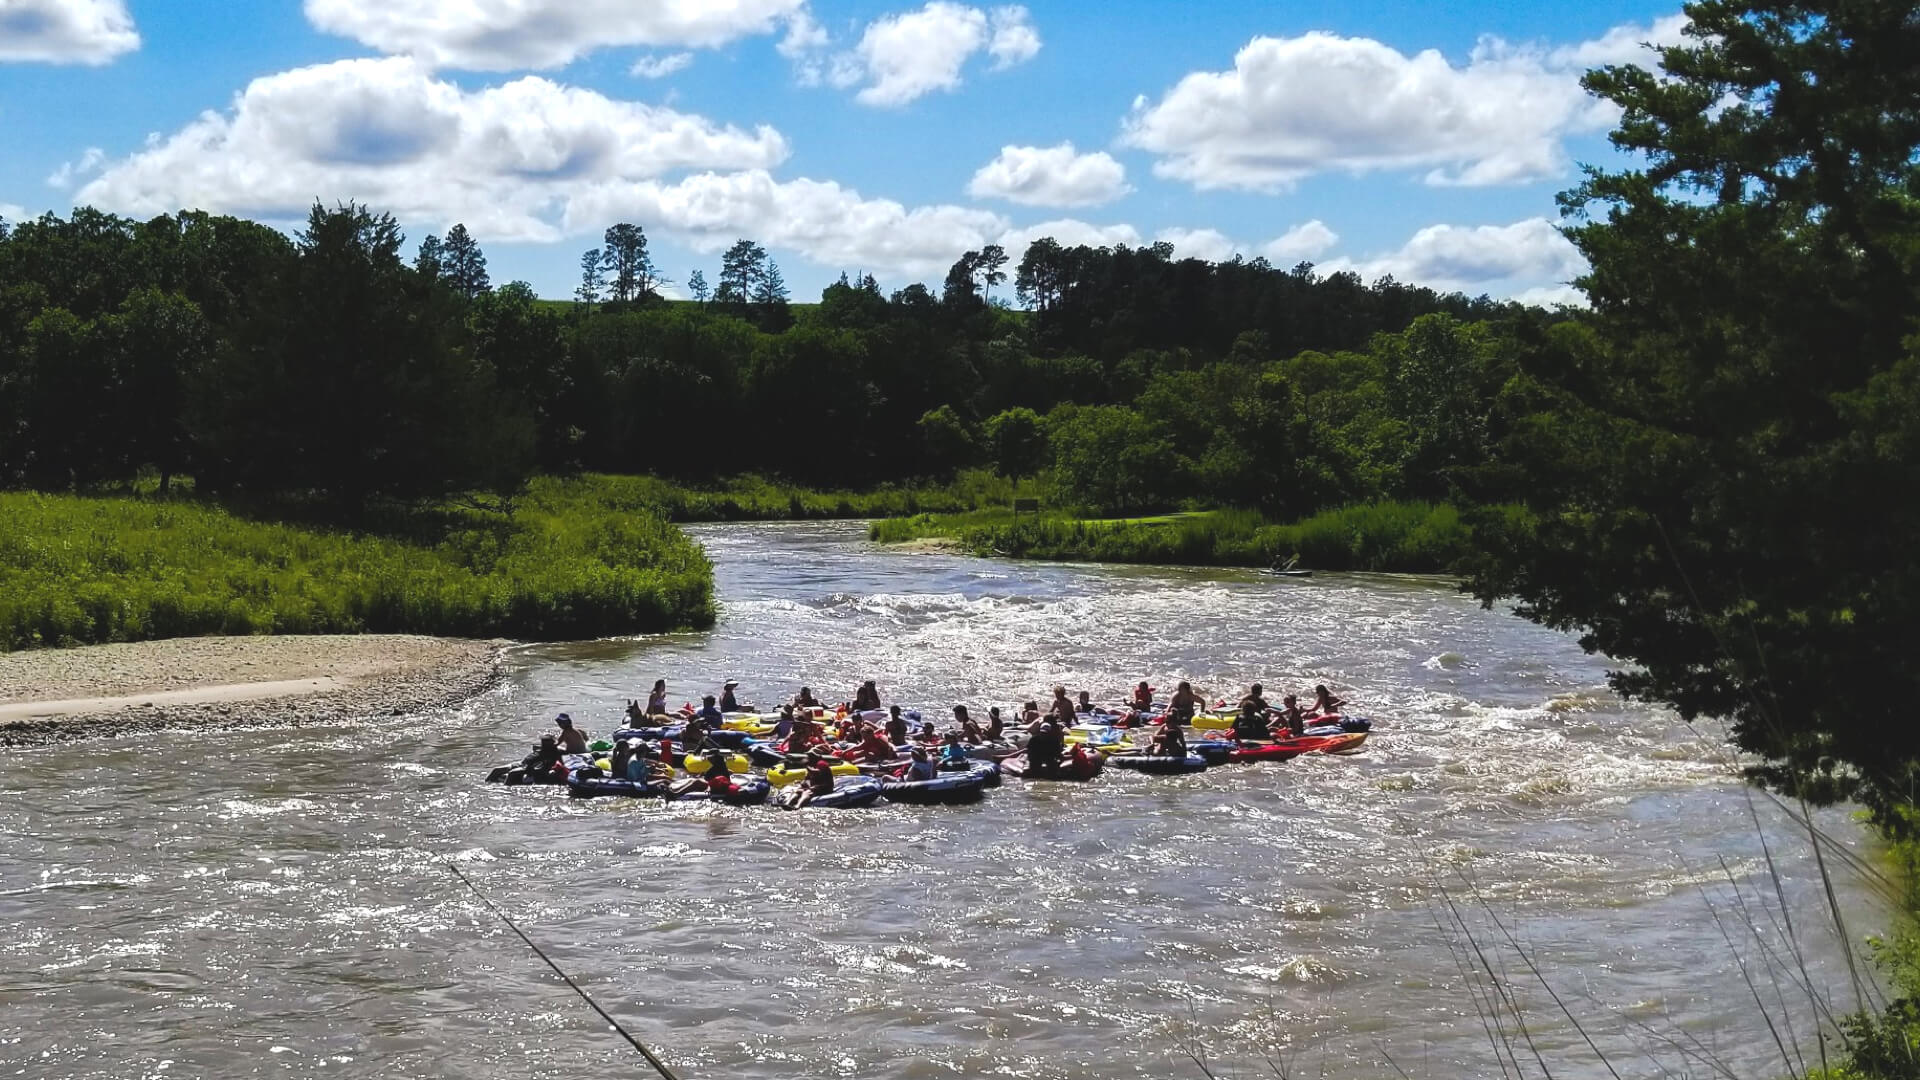 20 tubes with people on them floating down the Niobrara River